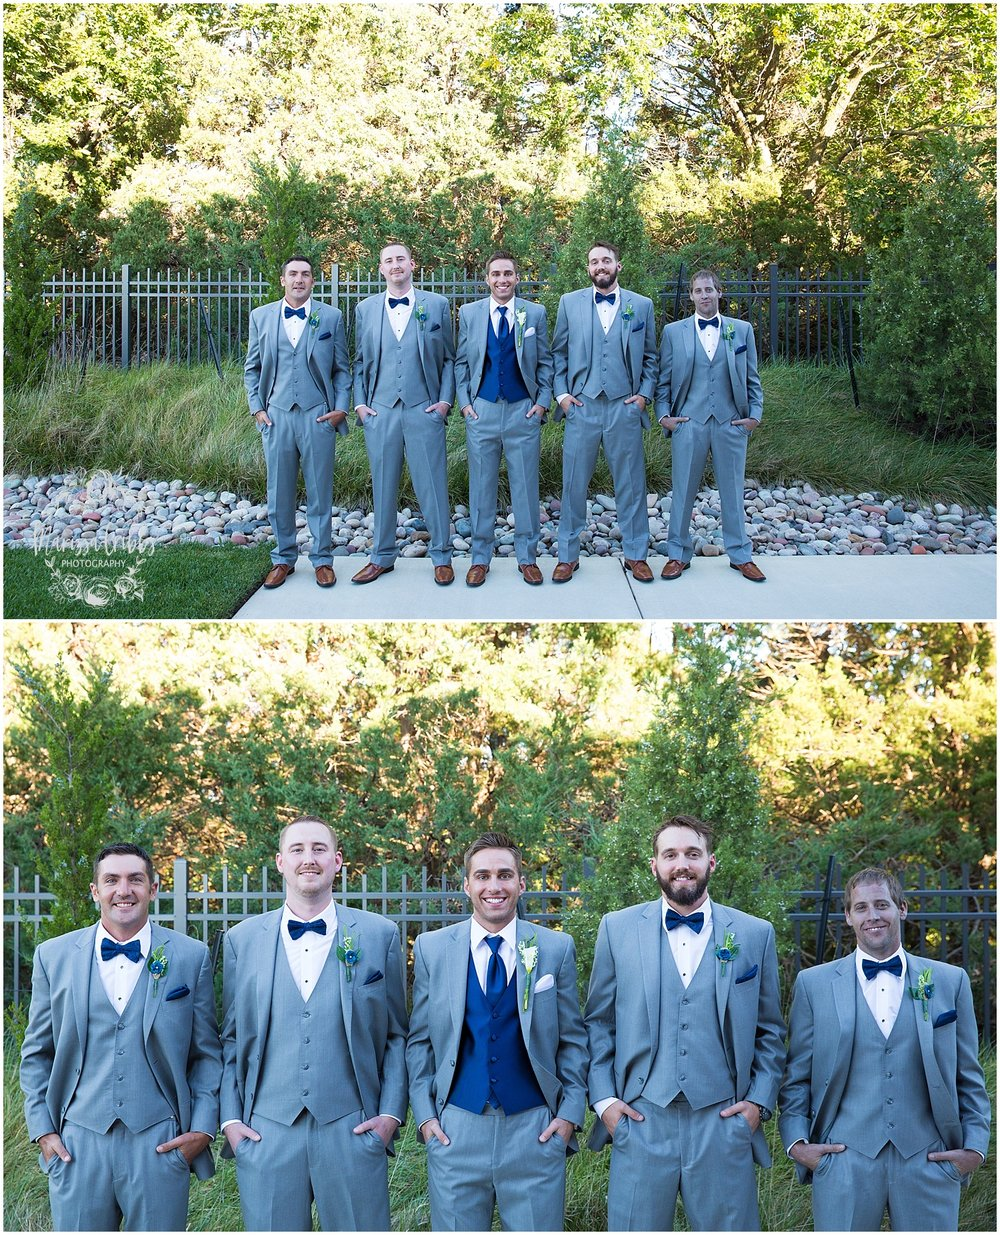 Sarah & Troy | Wichita KS Wedding Photography | Noah's Event Venue Wichita | Marissa Cribbs Photography_1022.jpg